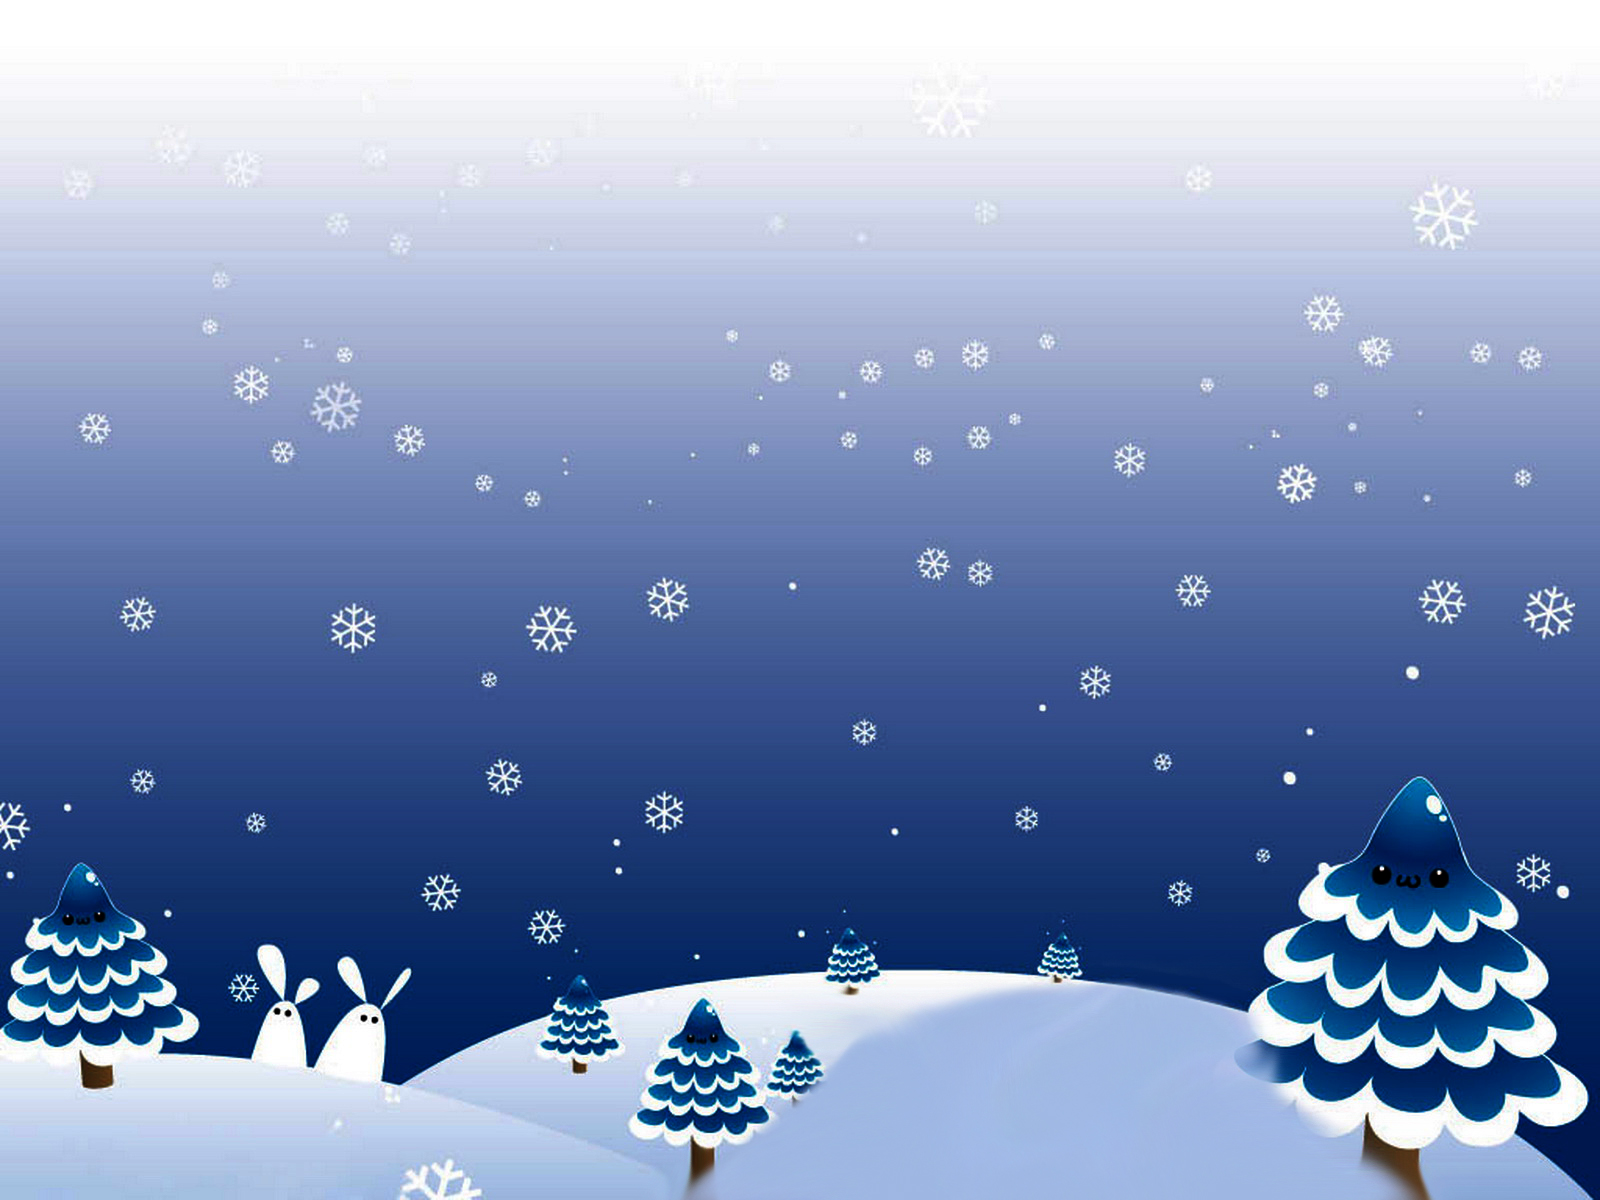 Winter Christmas Backgrounds: Christmas Winter Backgrounds